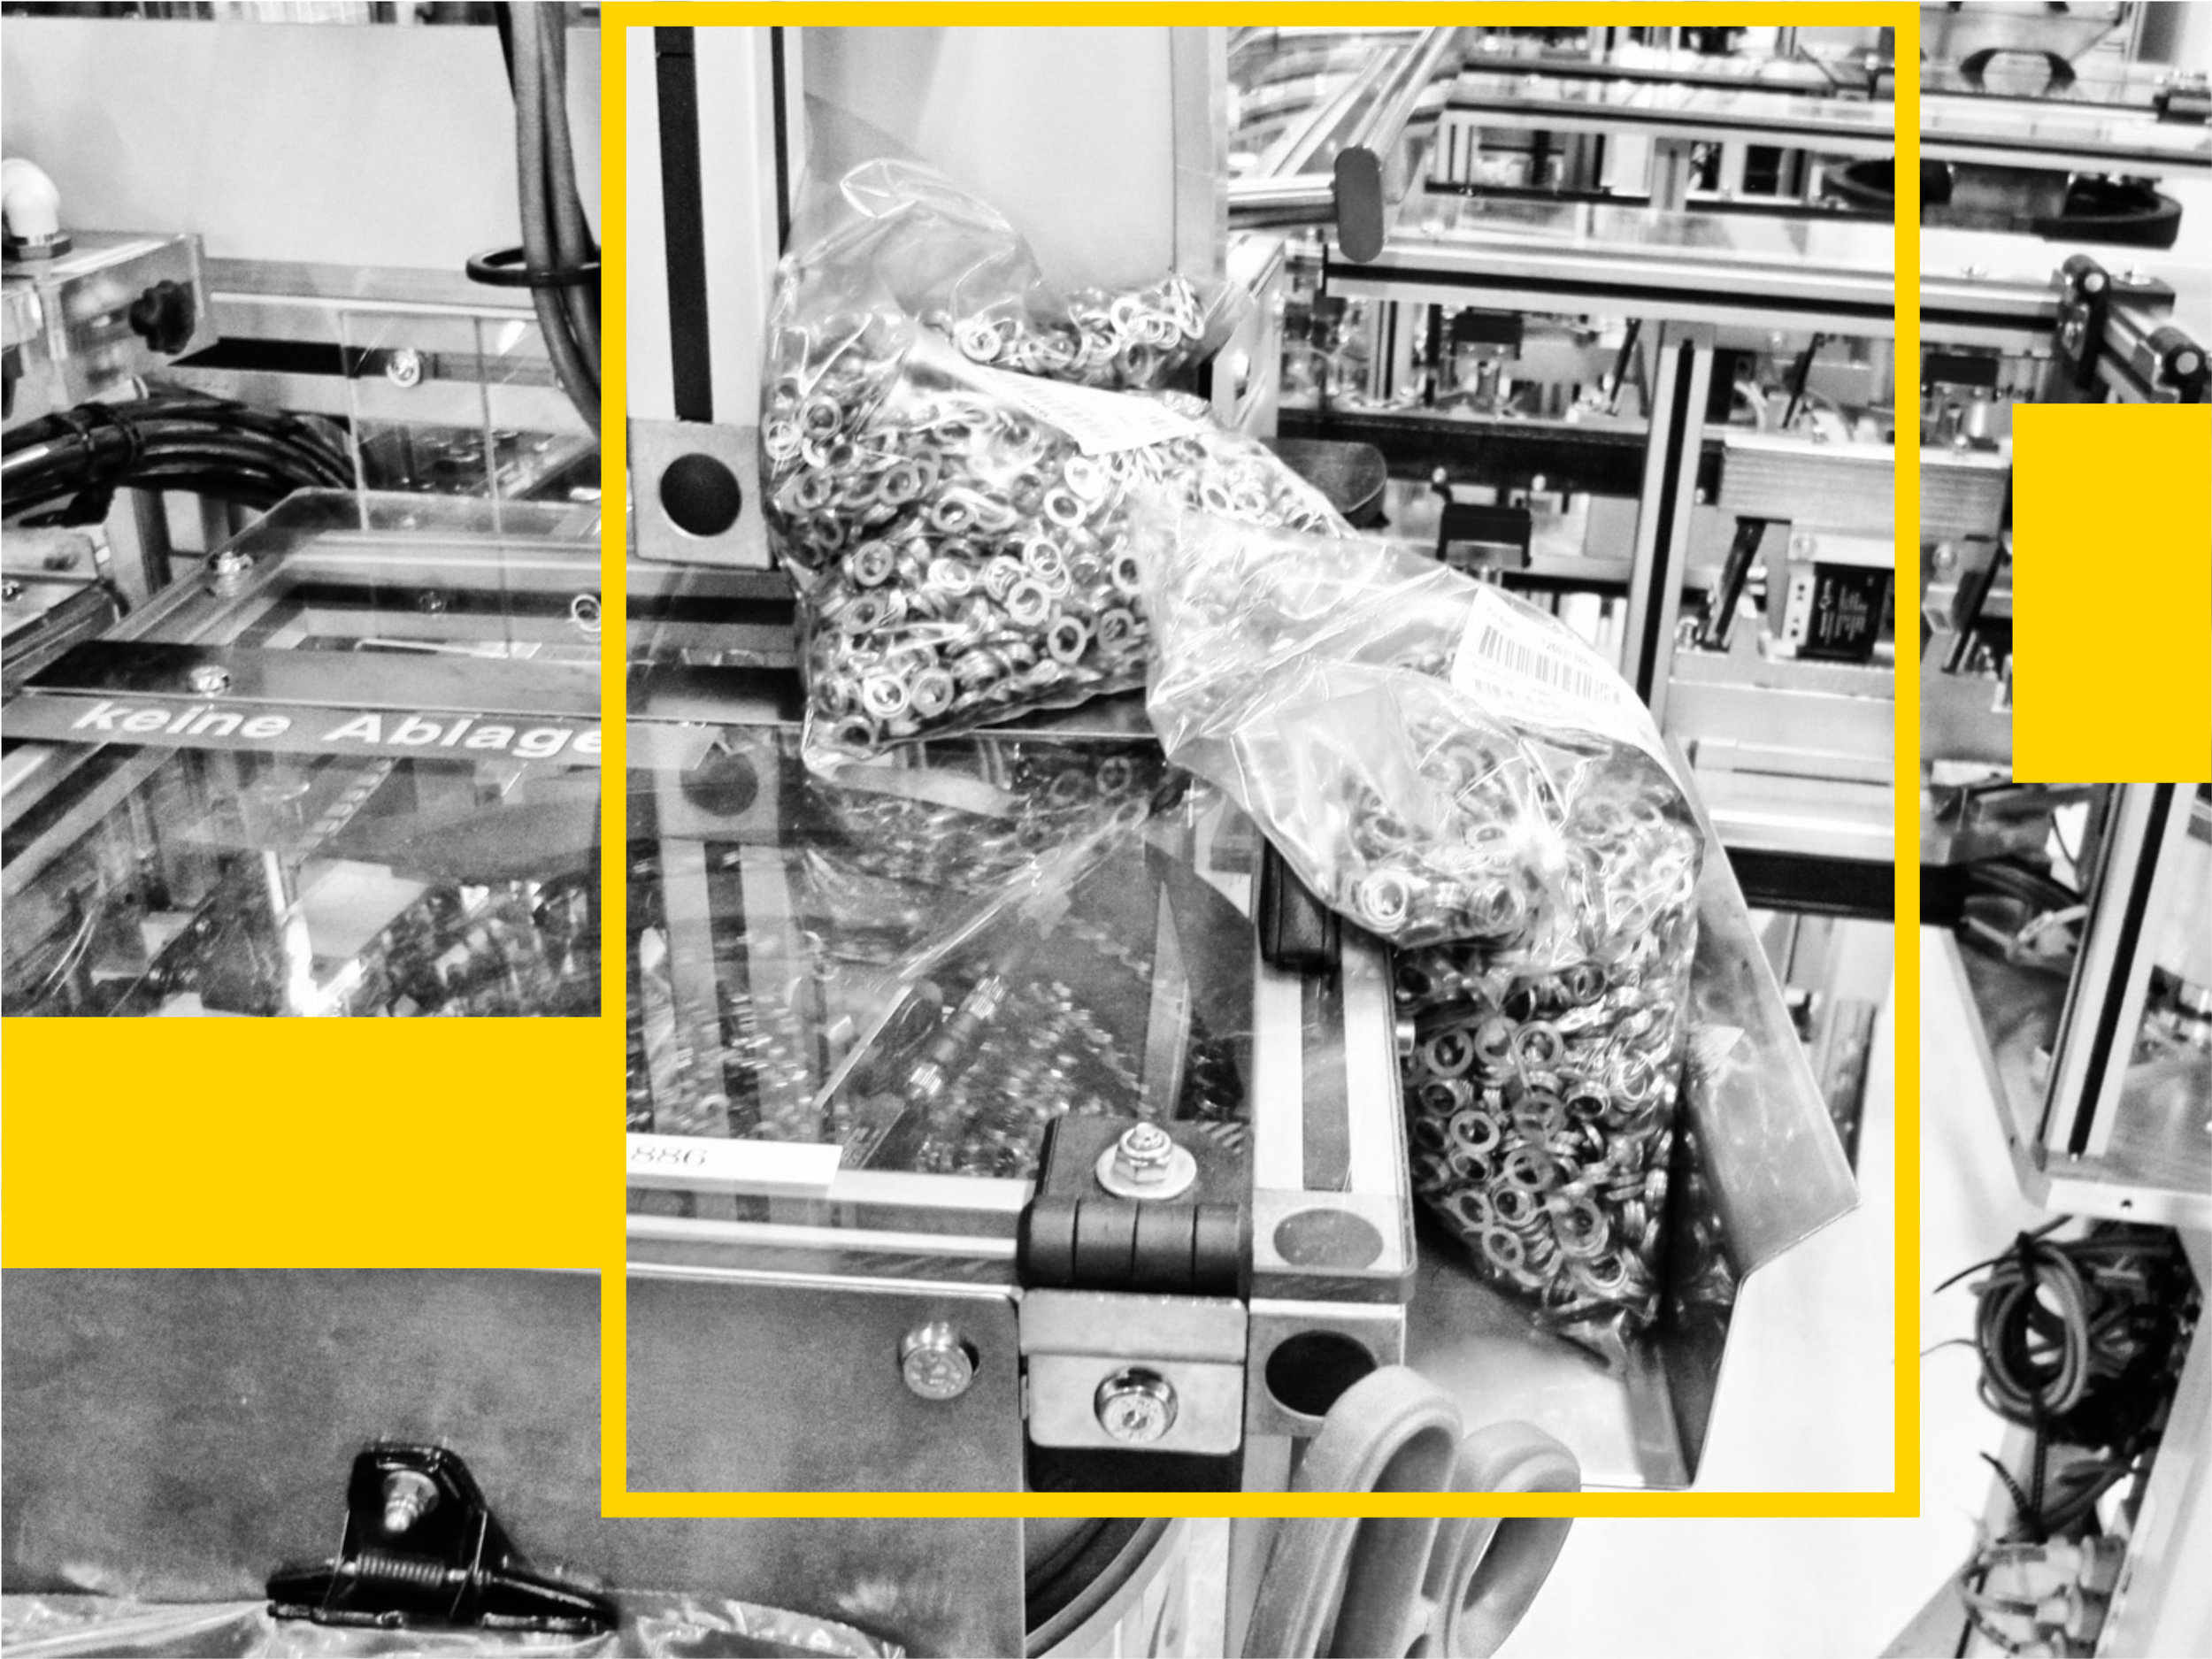 Due to imprecision in the planning process and calculation of time needed to retrieve material, staff deposited extra material directly on the machine. Such little workarounds illustrate how shopfloor staff keeps the production running despite imperfect data.